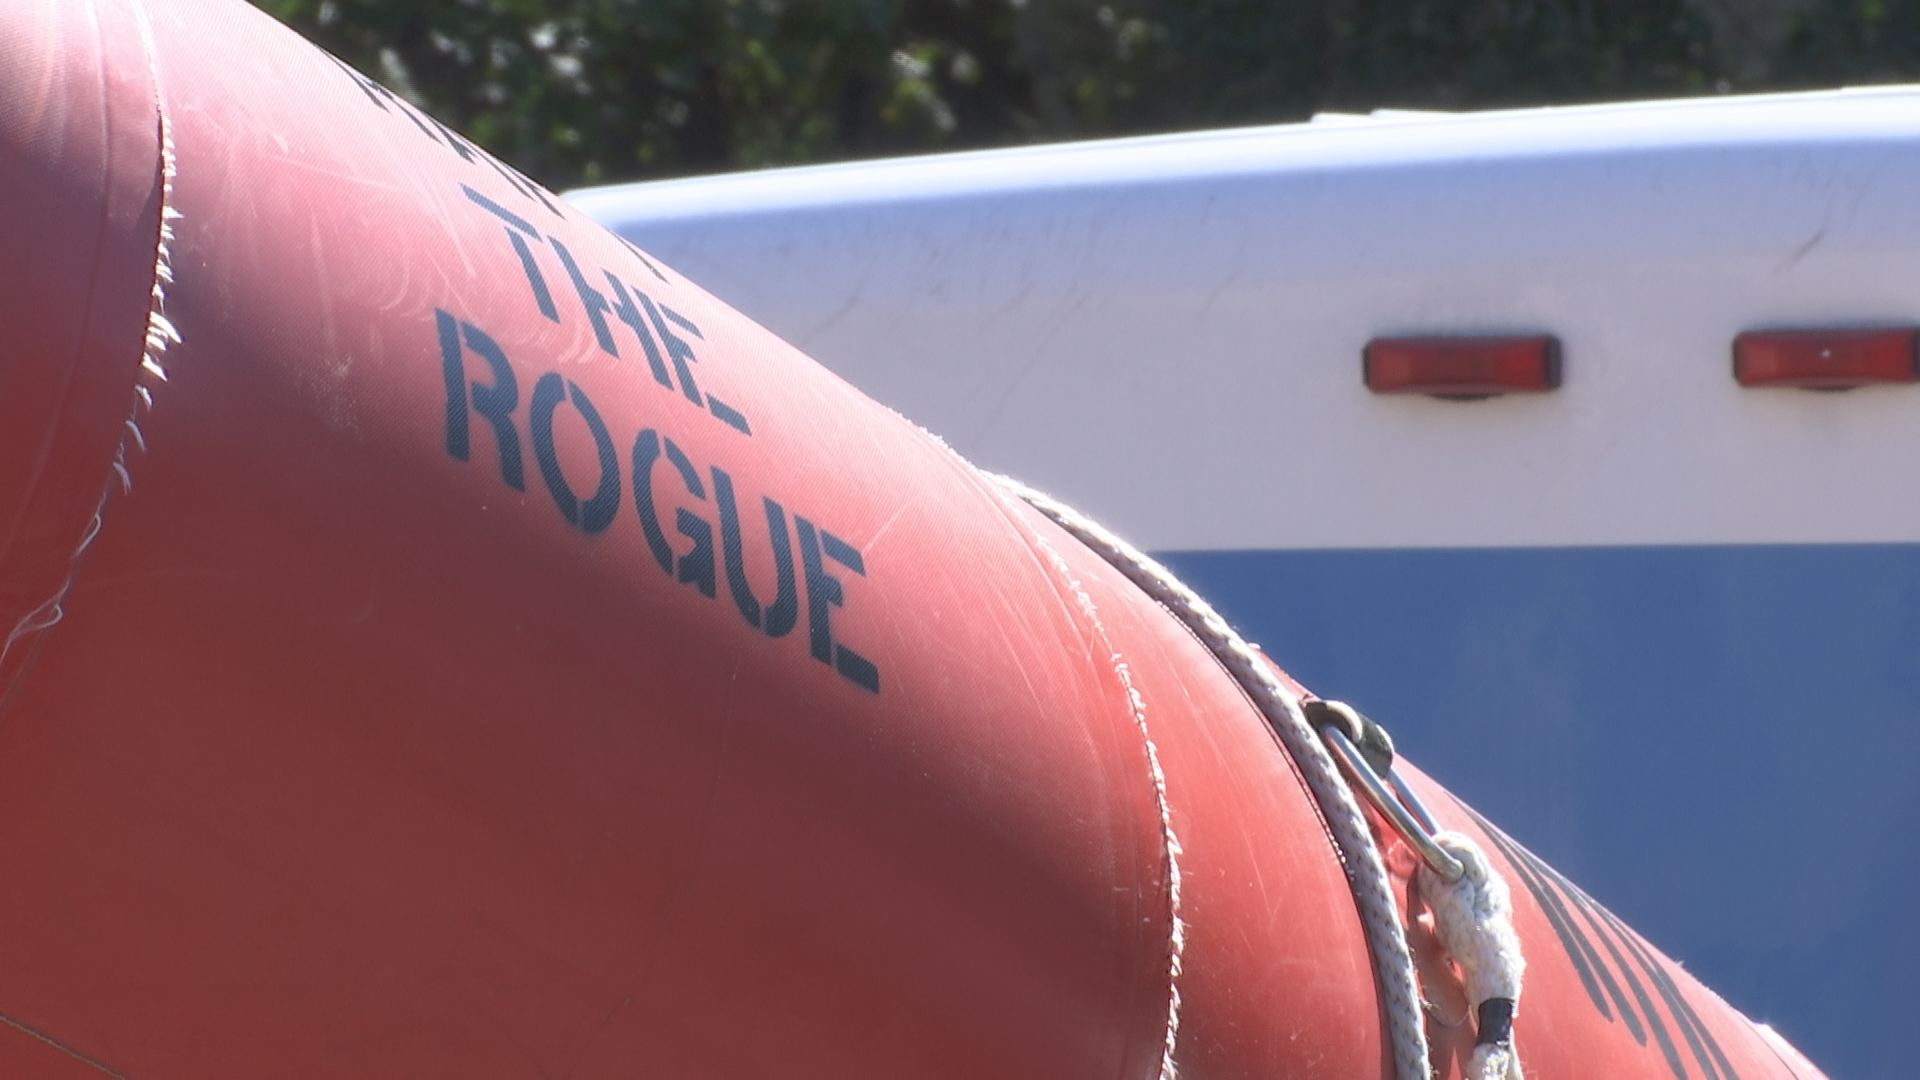 Rafting Companies See Booming Season Out On The Rogue